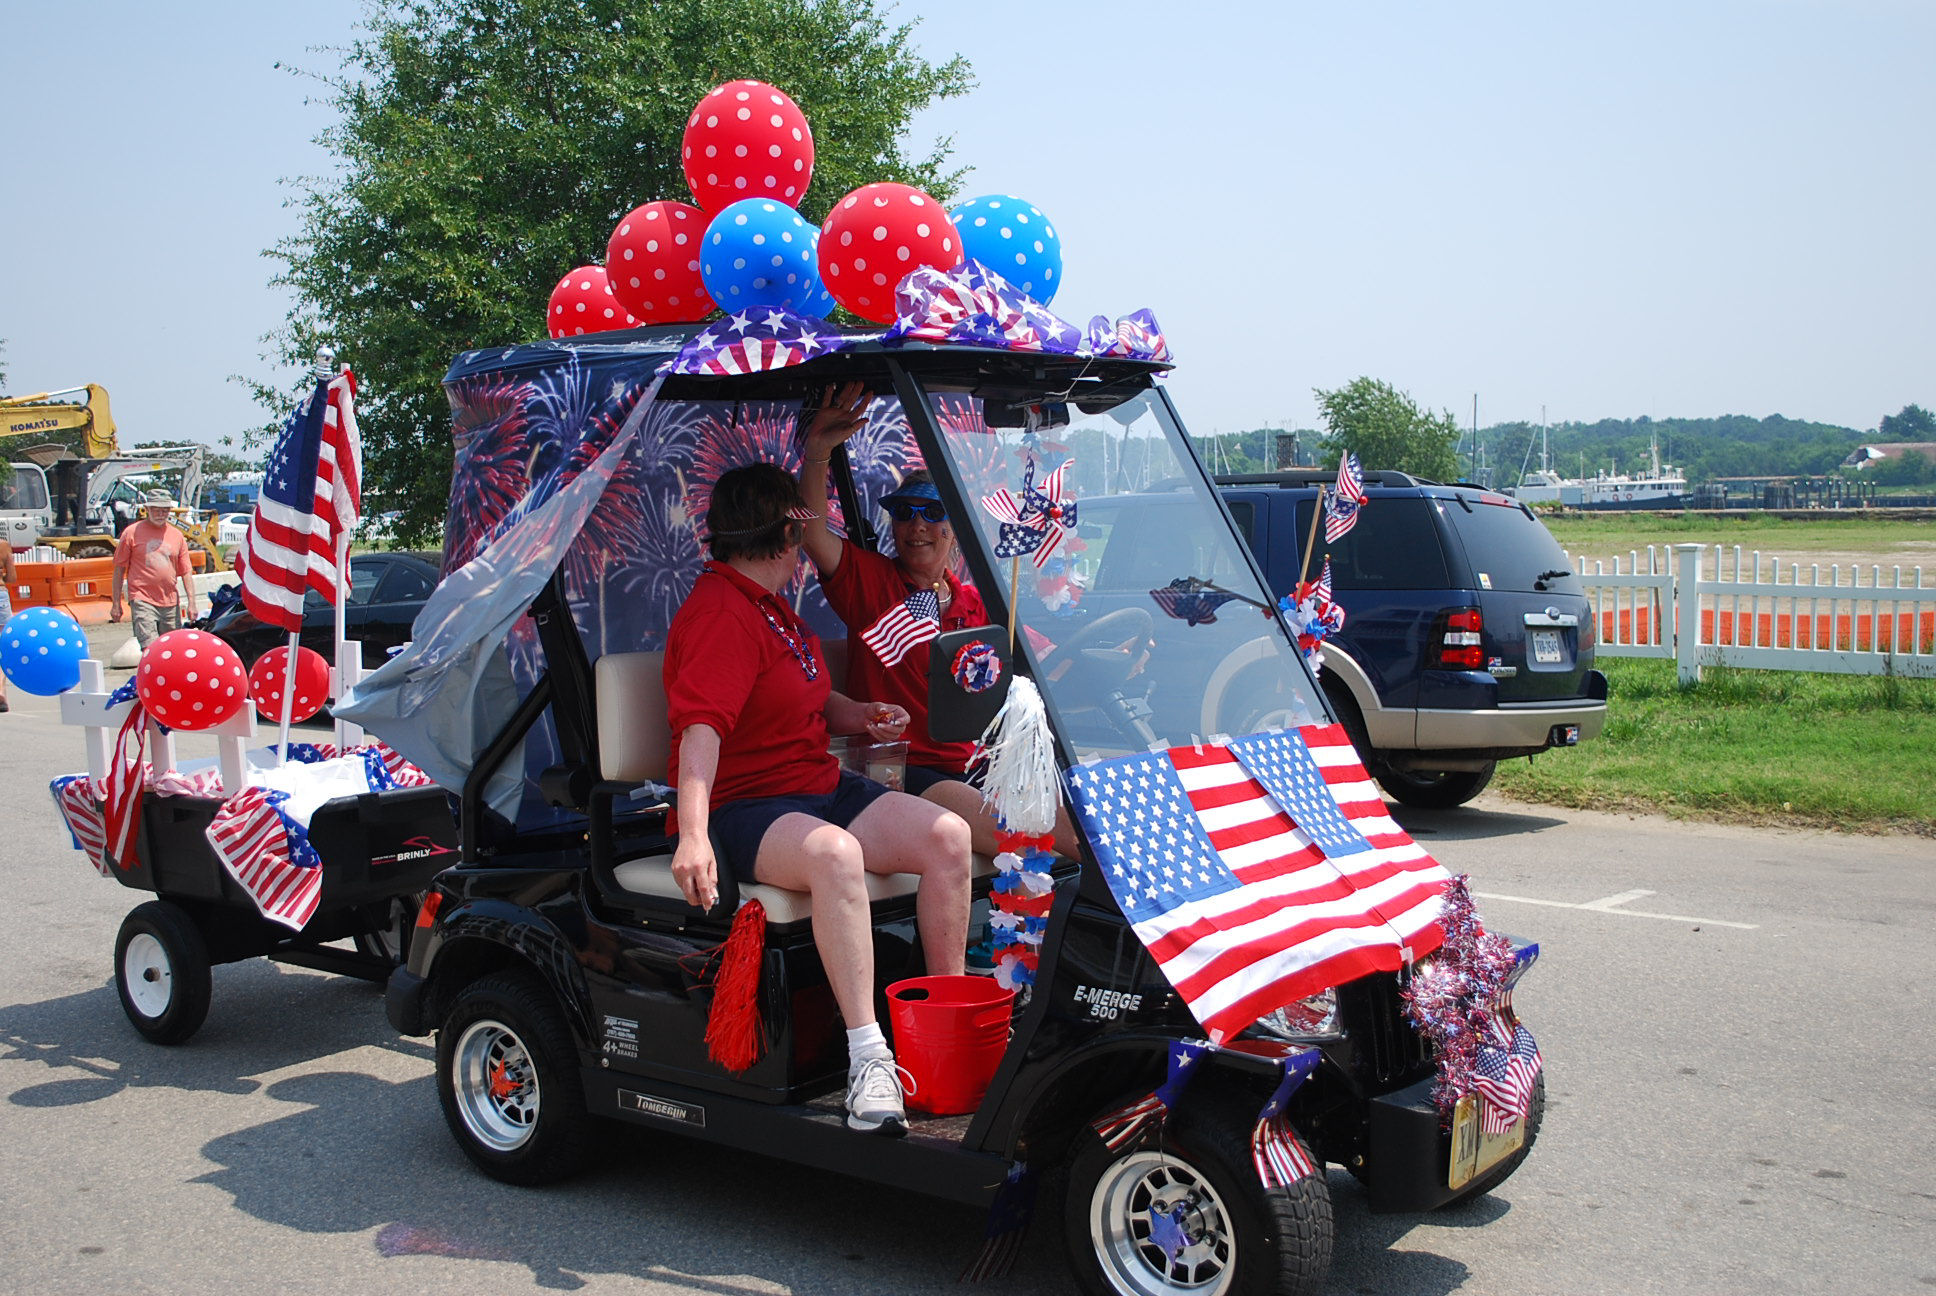 Golf Cart Decoration Contest « Life and Real Estate on the Eastern Golf Cart Decorations For Th Of July on betty boop july 4th, golf cart decorating ideas, golf cart christmas sleigh,